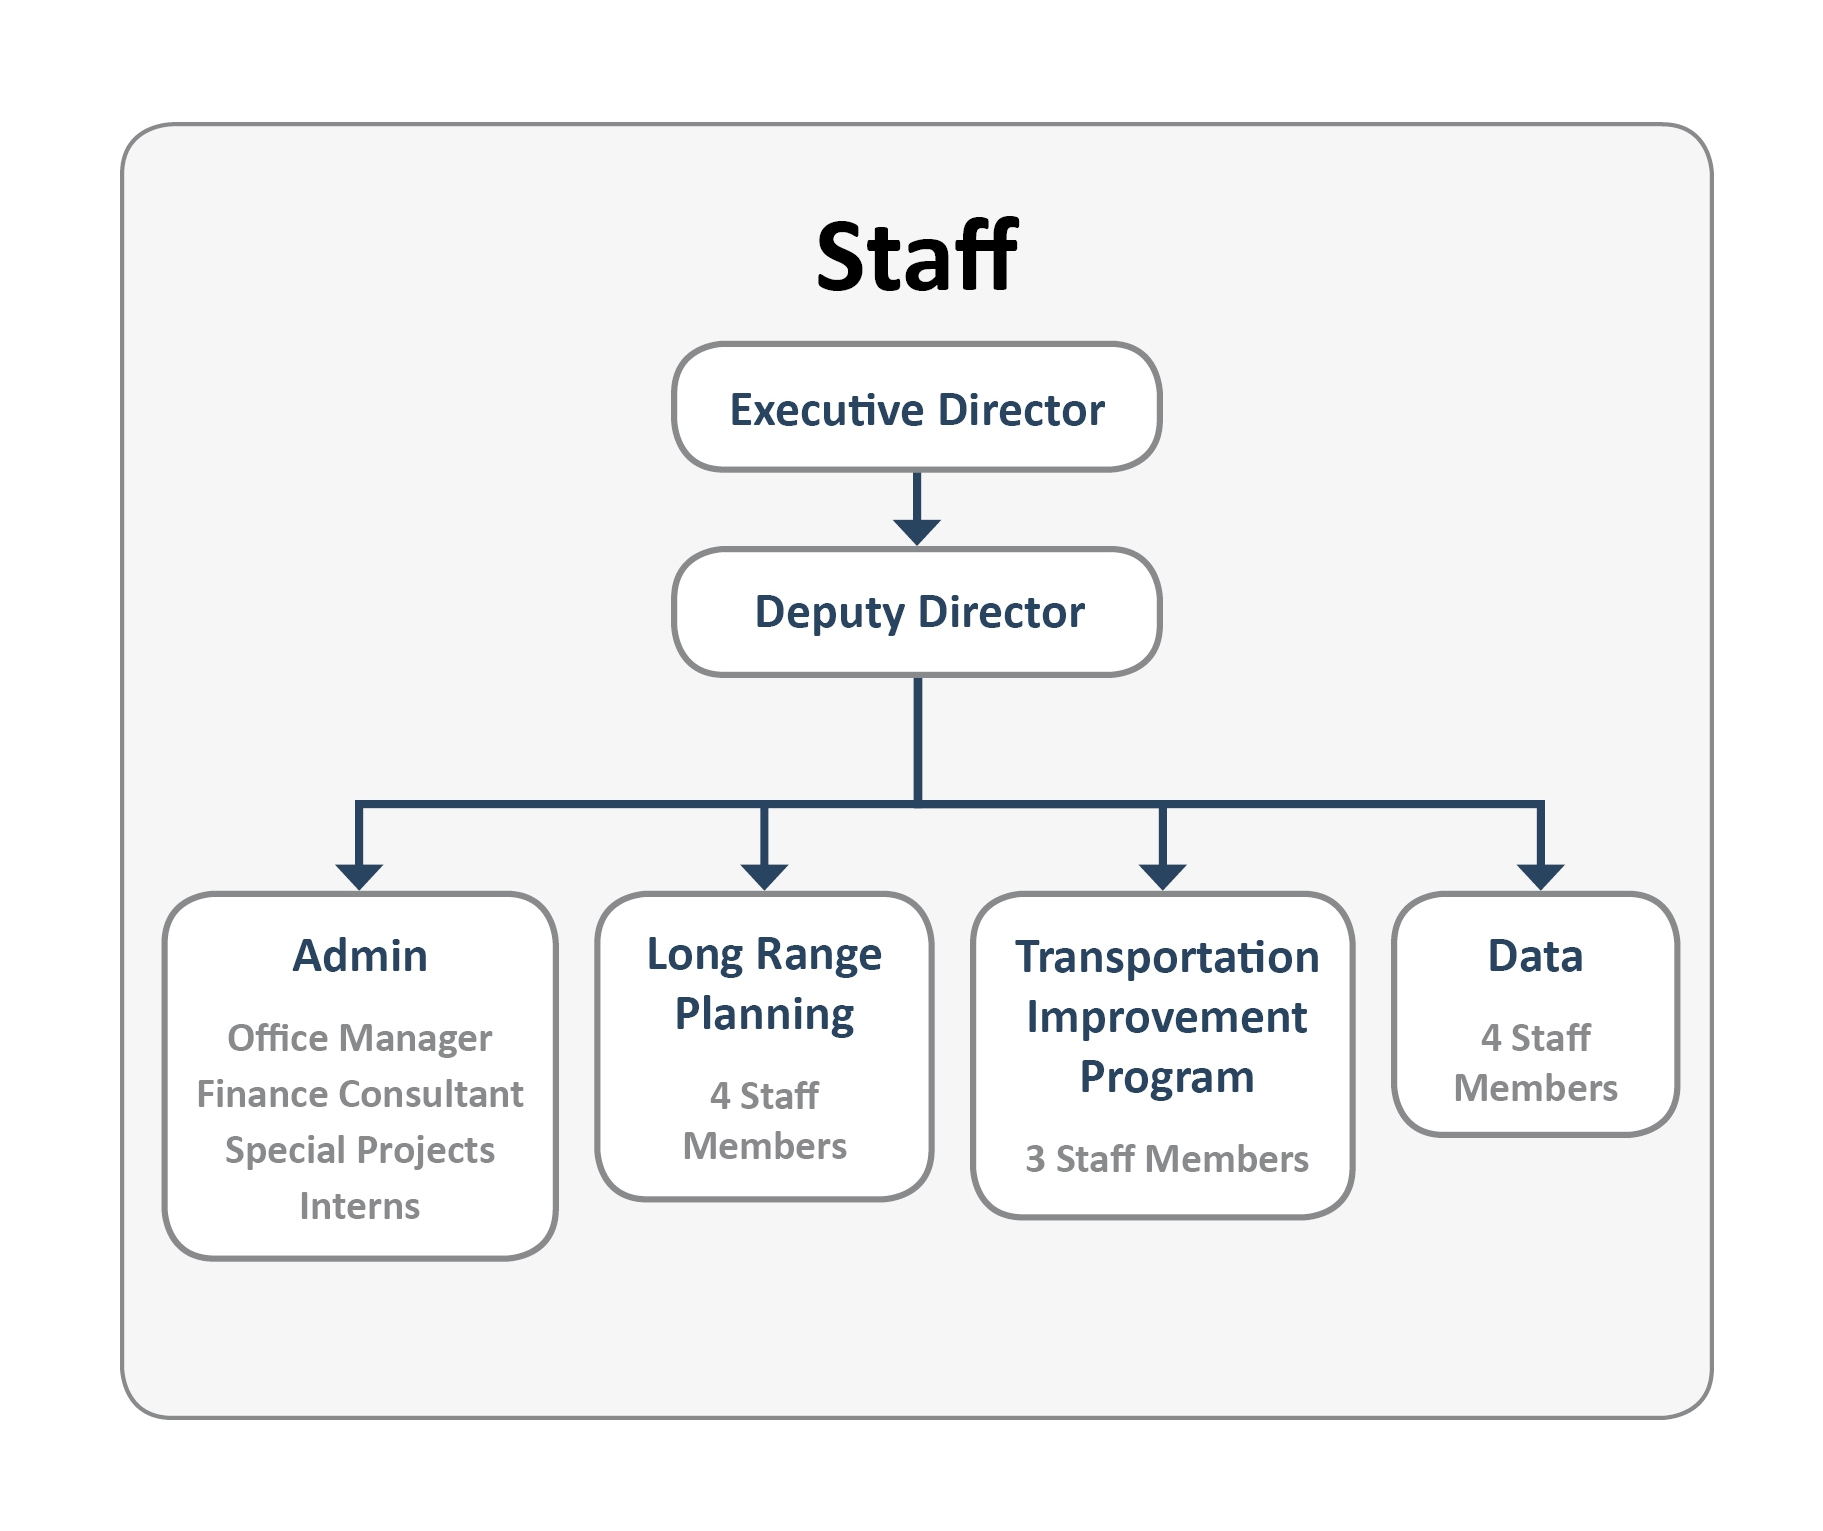 Org-Chart_20190715-STAFF-ONLY-Final.jpg#asset:2778